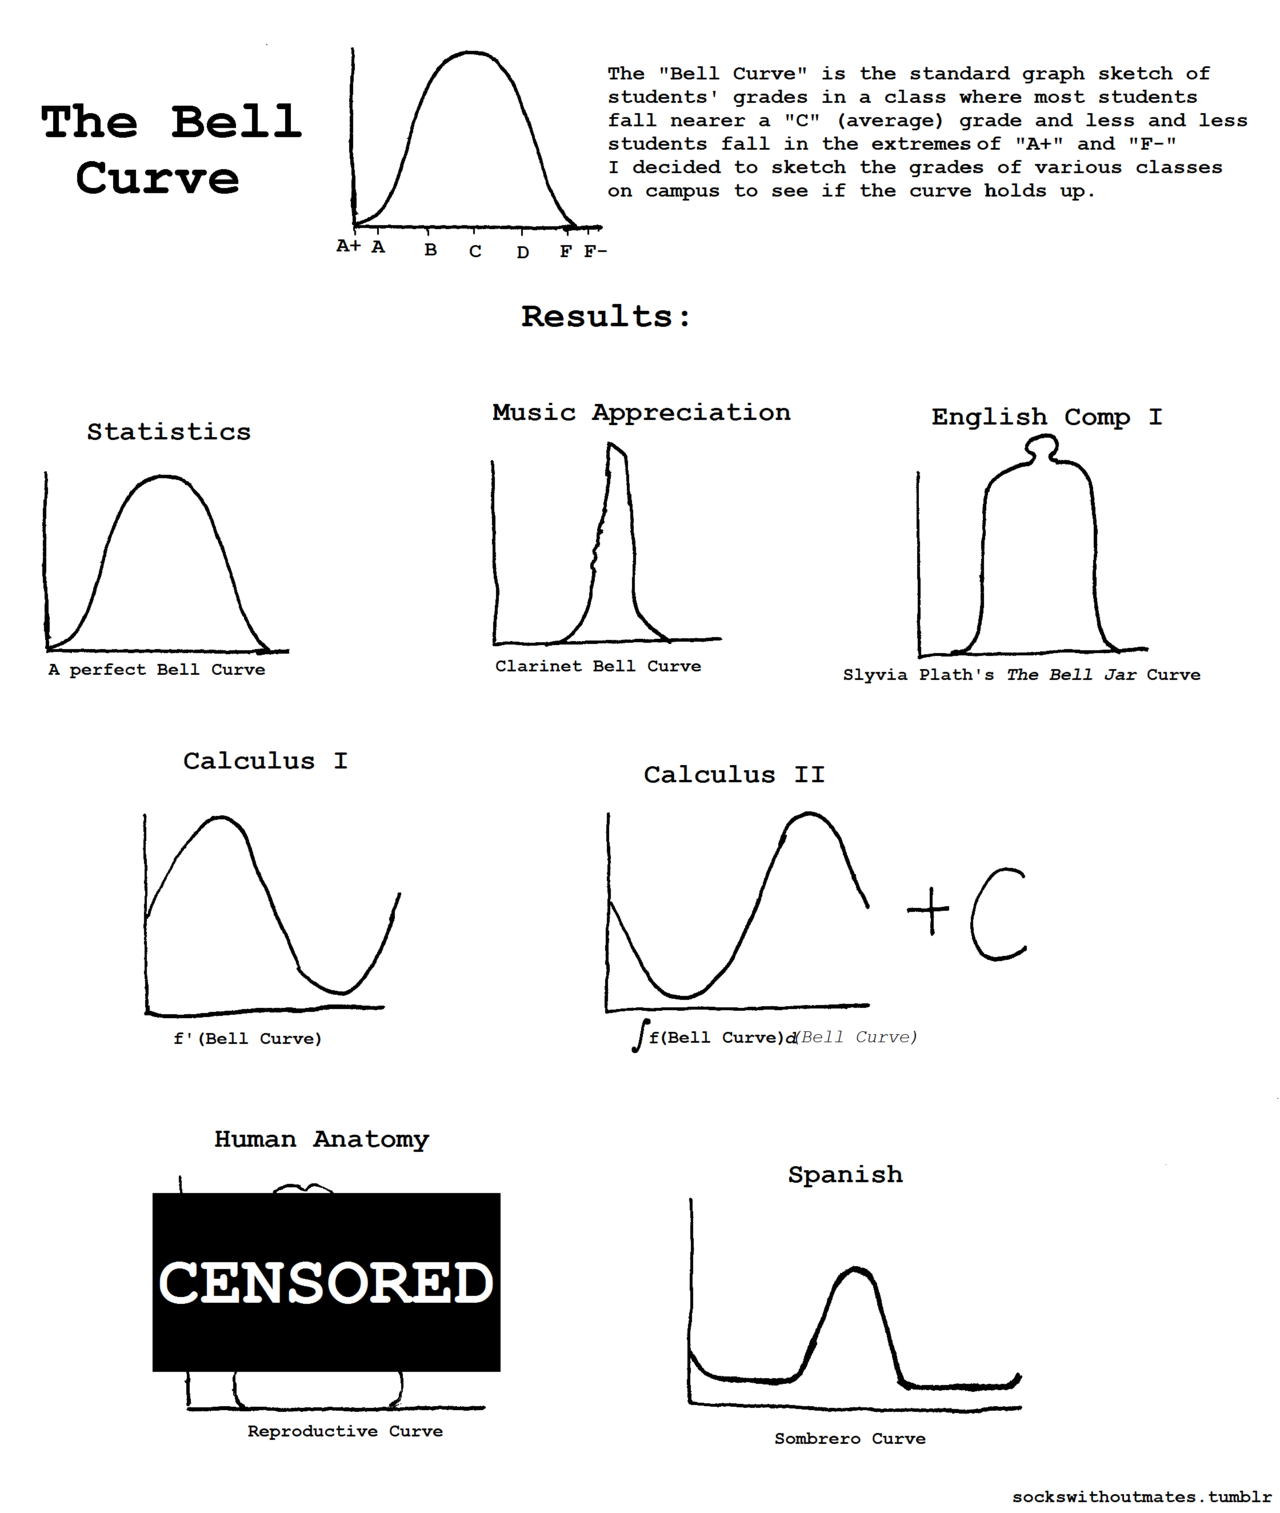 Pin By Iva On Graphic Design Graph Sketch Bell Curve Graphing